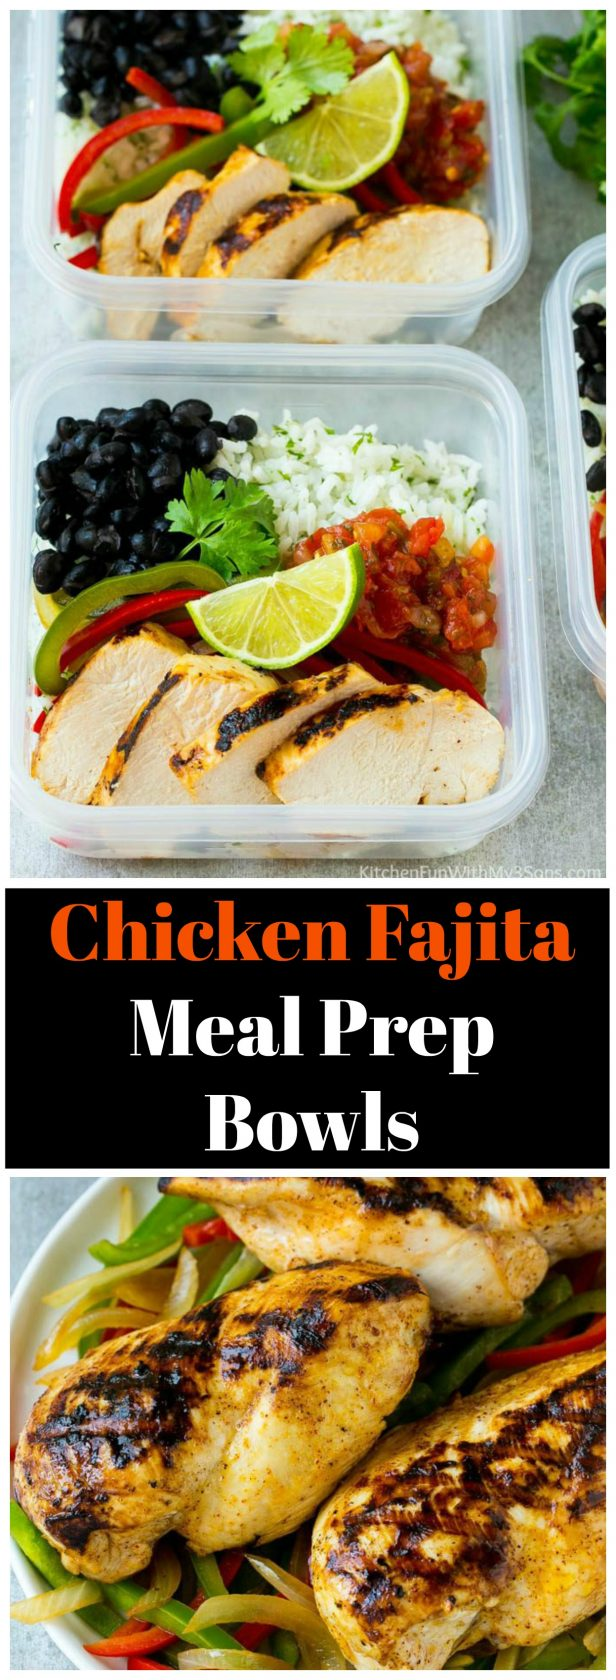 These chicken fajita meal prep bowls are loaded with marinated chicken, colorful veggies, black beans and cilantro lime rice. An easy and healthy lunch option and it makes a great family meal too!